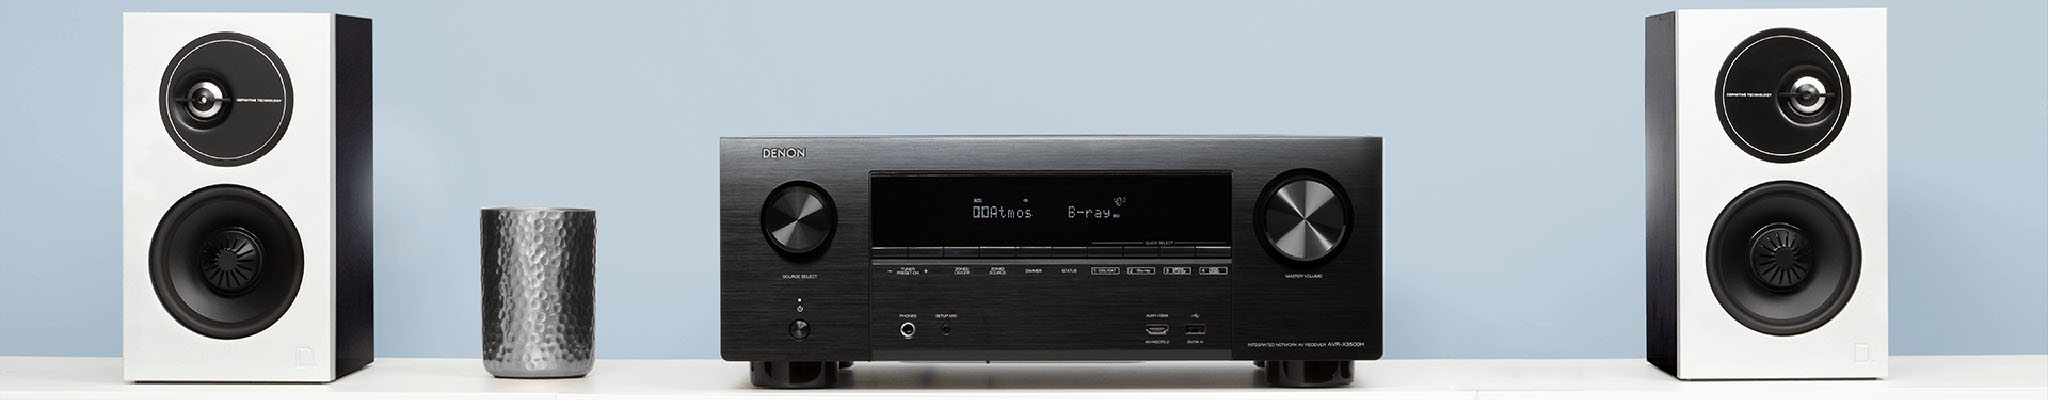 Denon Av Receiver Avr X3500h Online Hi Fi Nz Audio Specialists Receivers Datasheet For Home Theater Product Solution 1 2